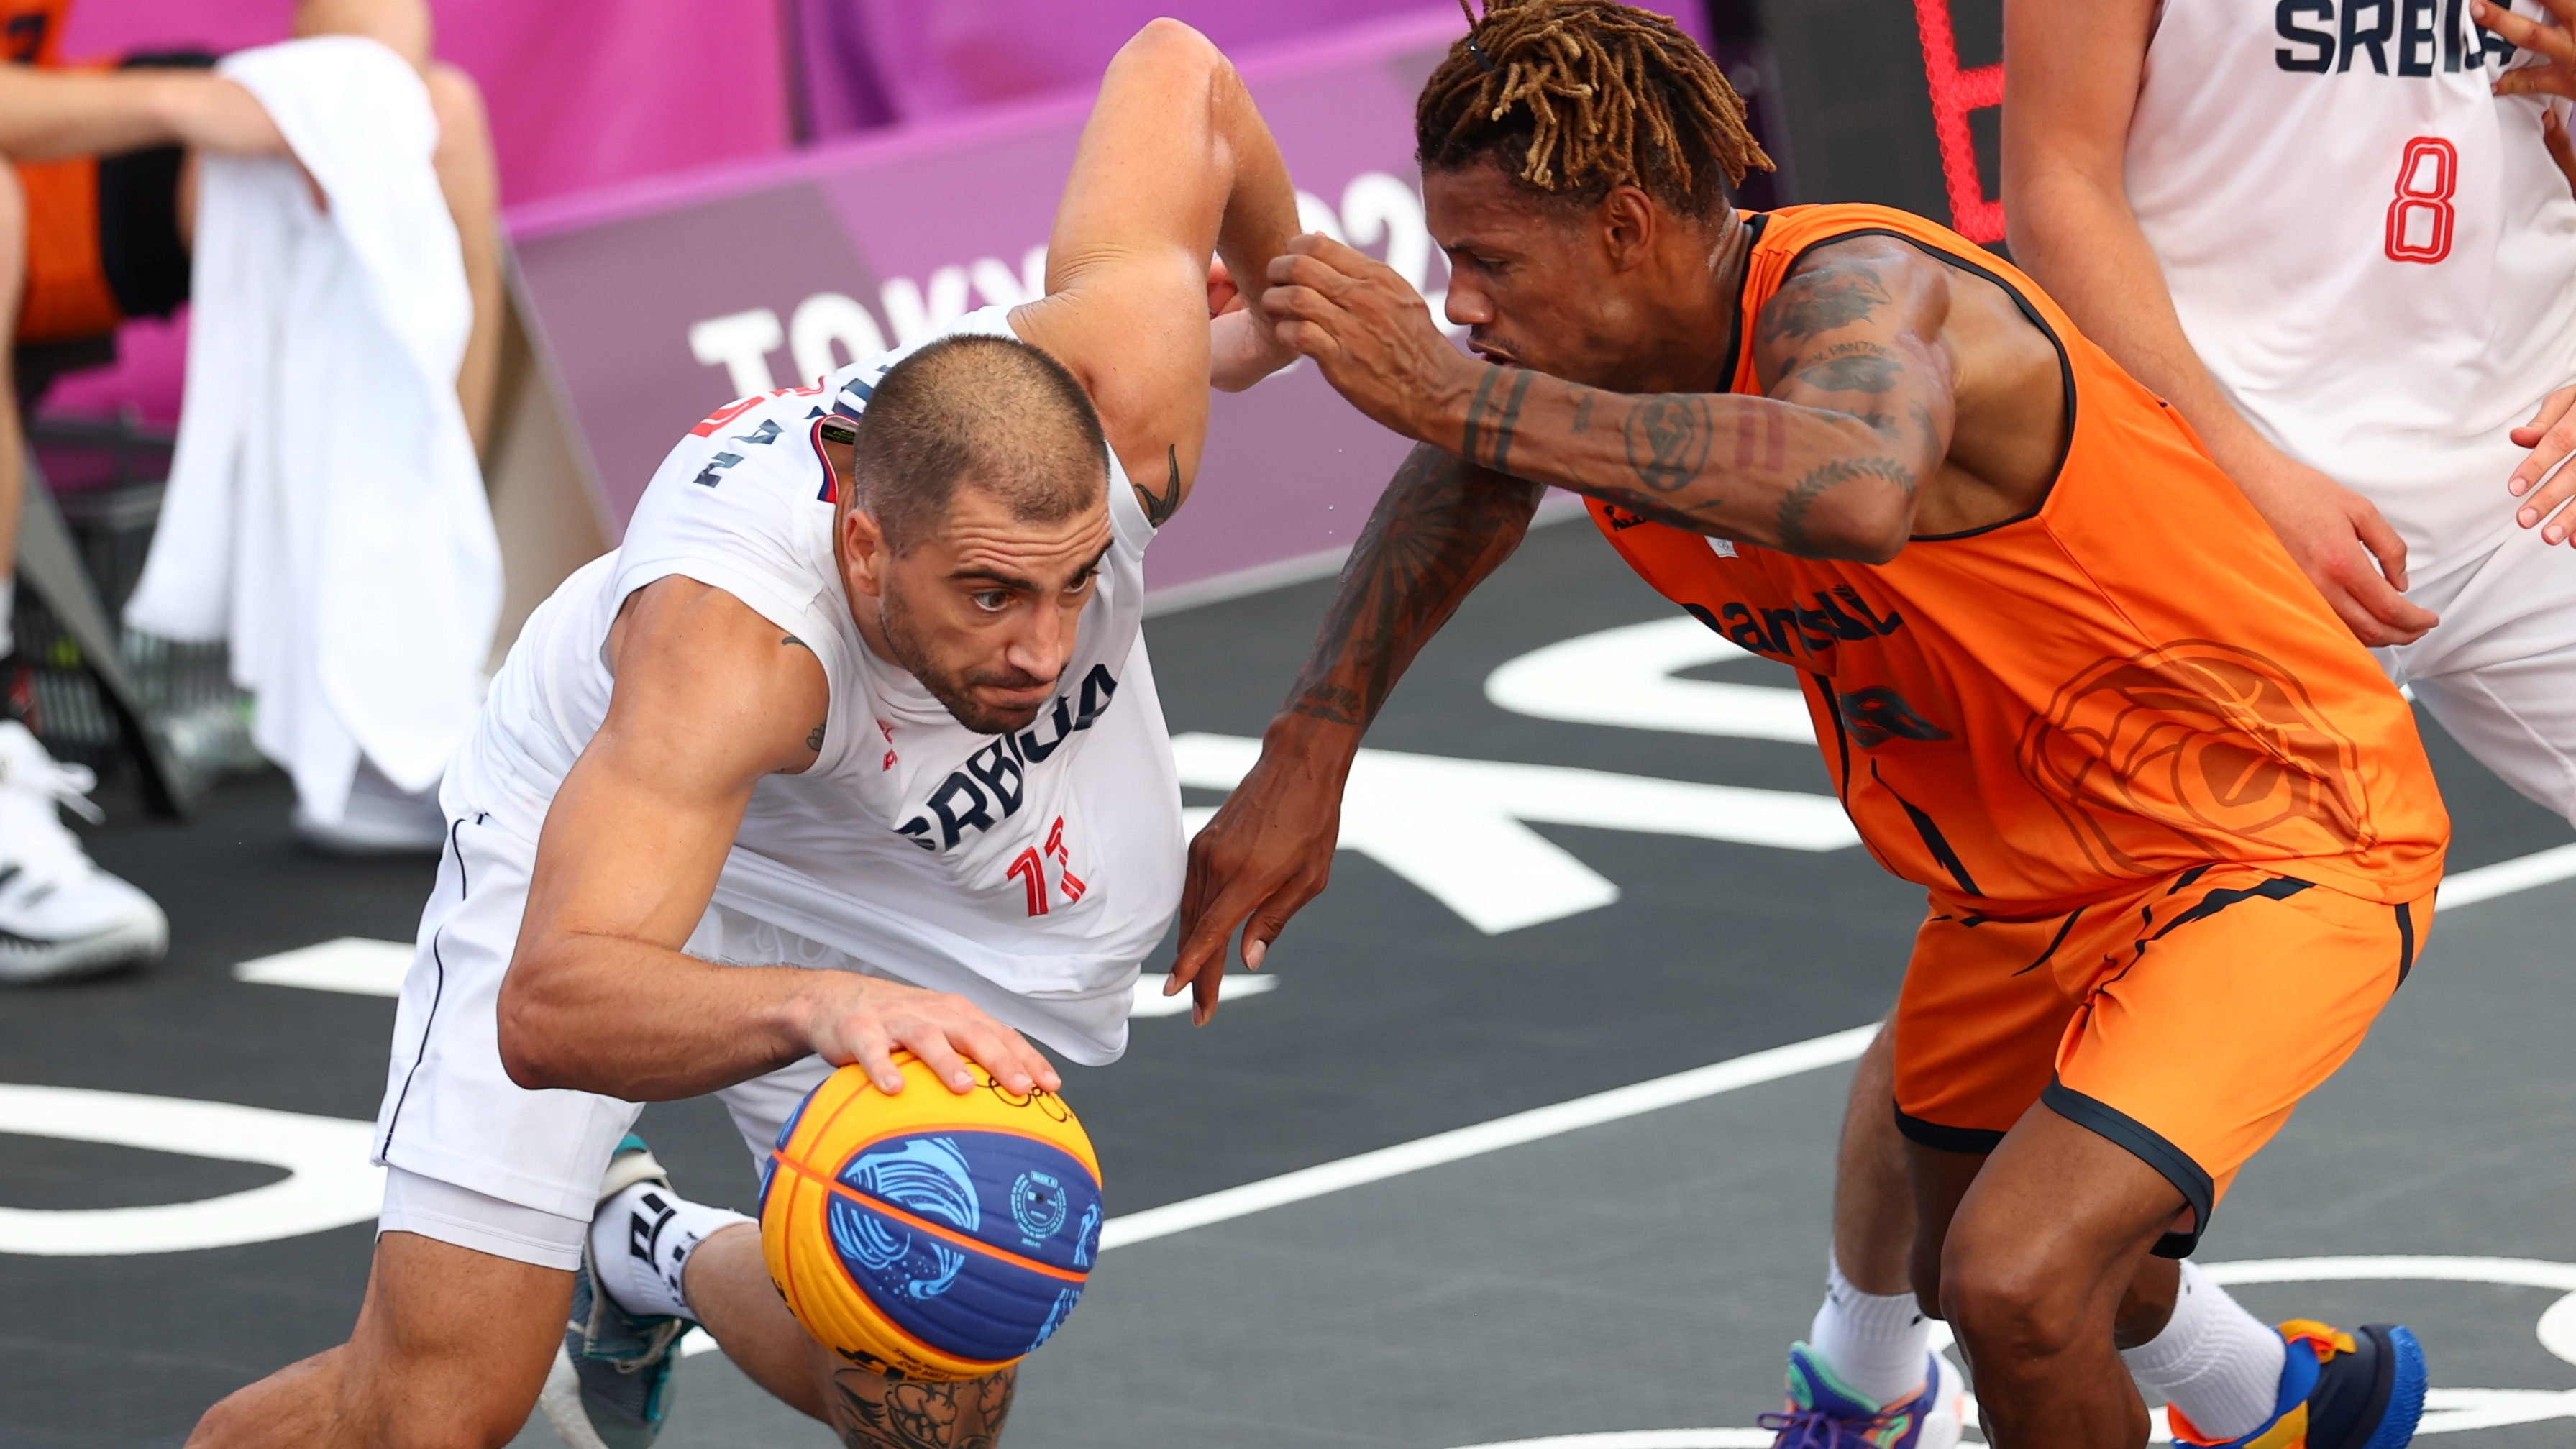 Tokyo 2020 Olympics - Basketball 3x3 - Men - Pool A - Serbia v Netherlands - Aomi Urban Sports Park, Tokyo, Japan - July 24, 2021.  Mihailo Vasic of Serbia in action with Jessey Voorn of the Netherlands during a match. REUTERS/Andrew Boyers